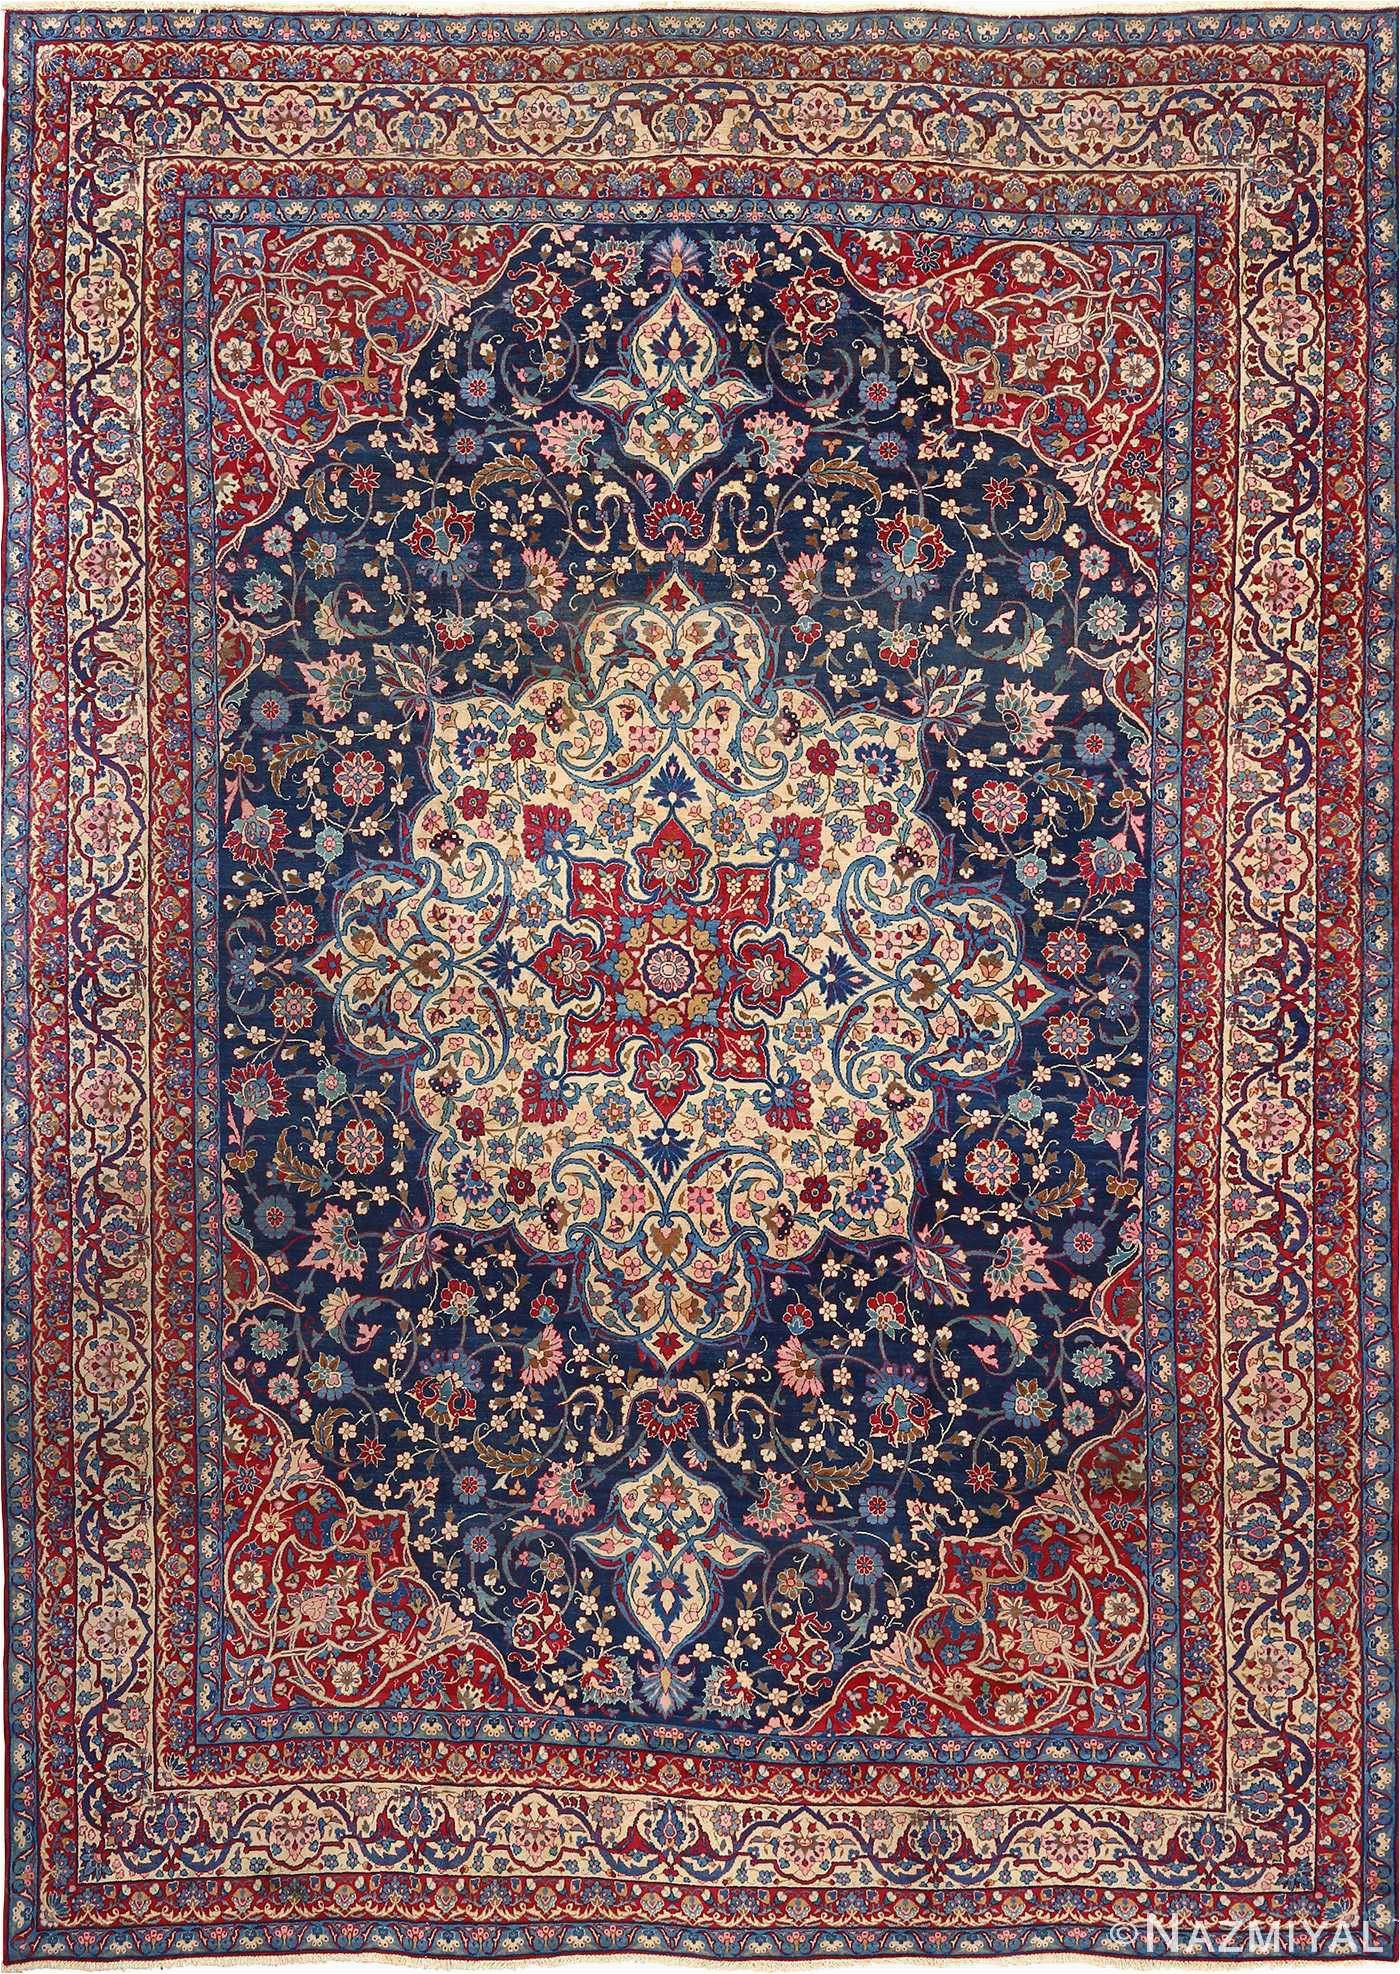 antique blue bakground isfahan persian rug